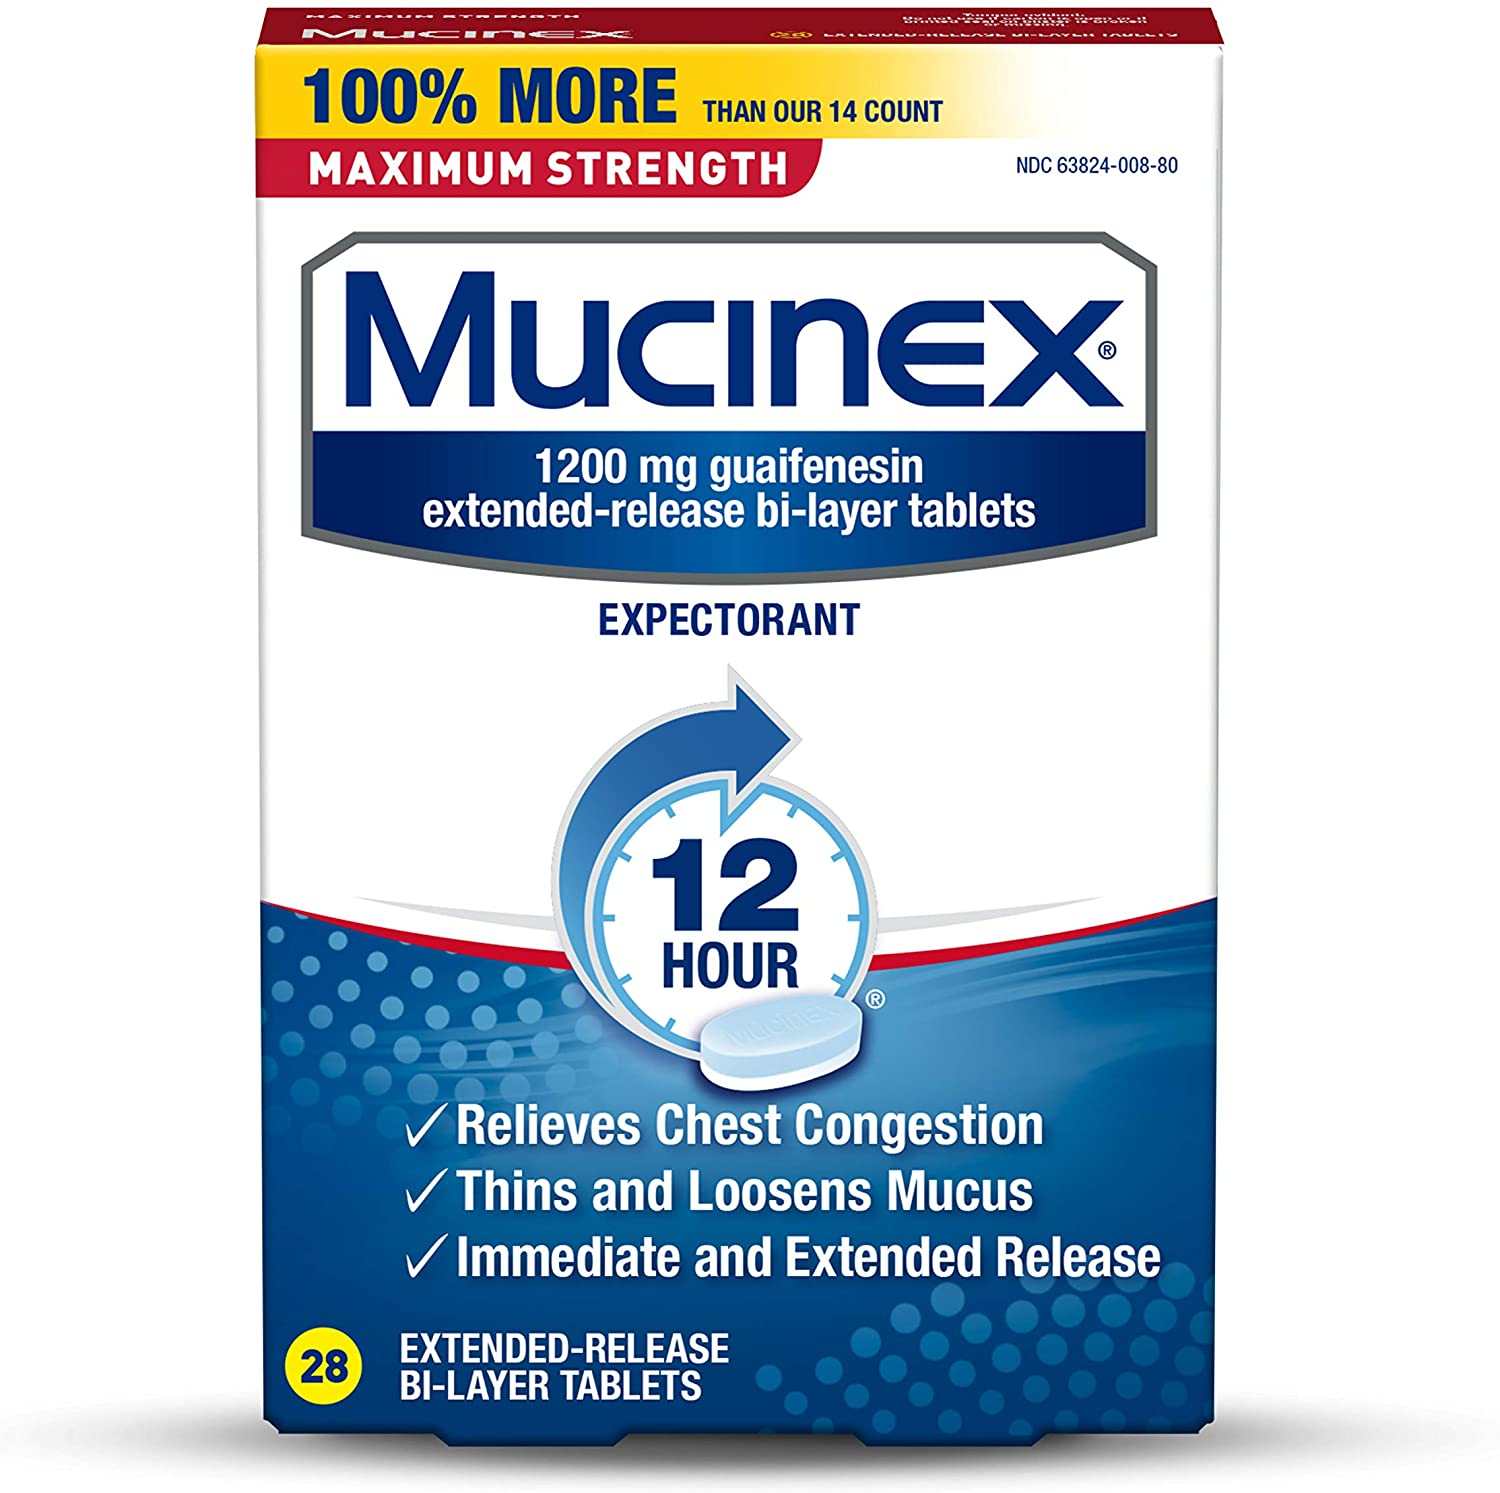 Mucinex Maximum Strength 12 Hour Chest Congestion Expectorant Relief Tablets, 1200 mg, 28 Count, Thins & Loosens Mucus